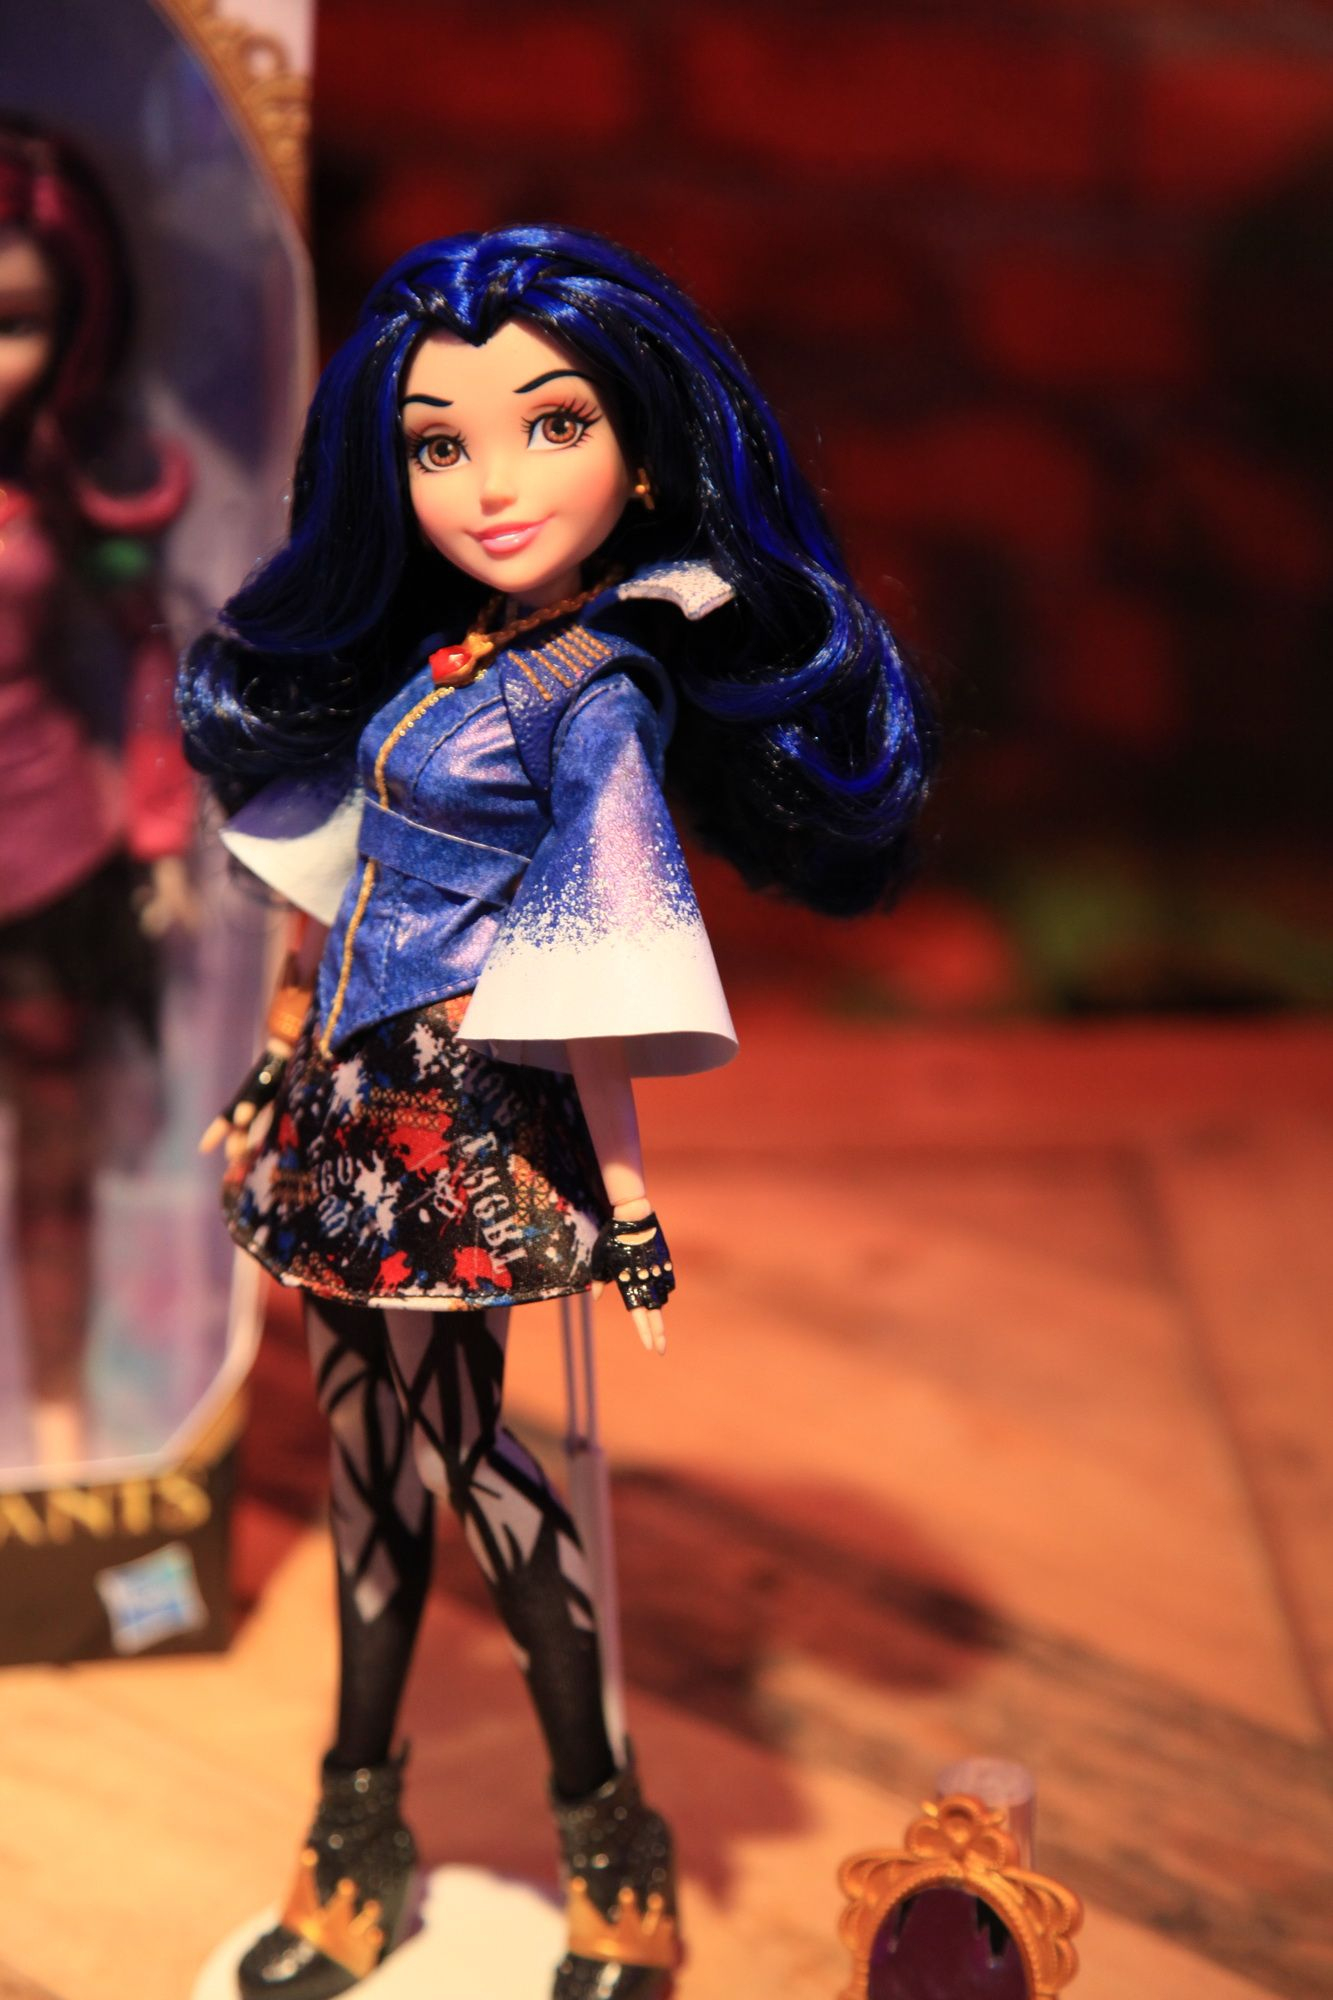 Evie, The Daughter Of The Evil Queen From Snow White, In concernant ?Pingle Sur Evie De Descendants